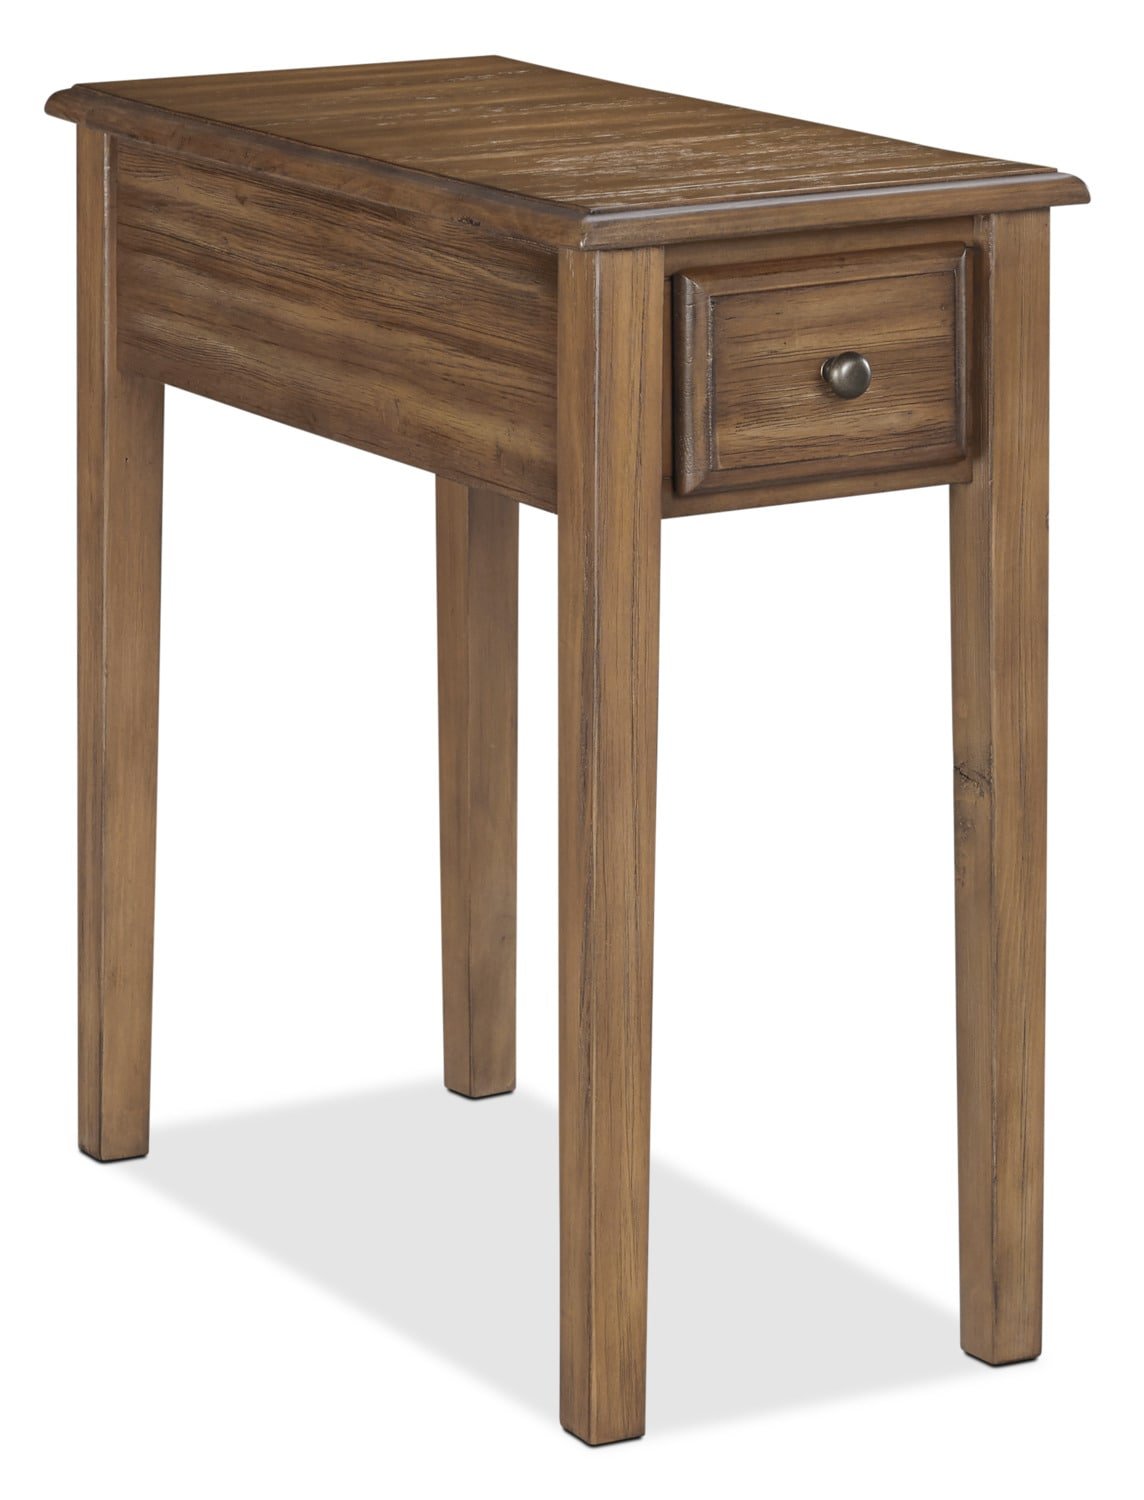 Weldon Solid Pine Accent Table – Warm Brown